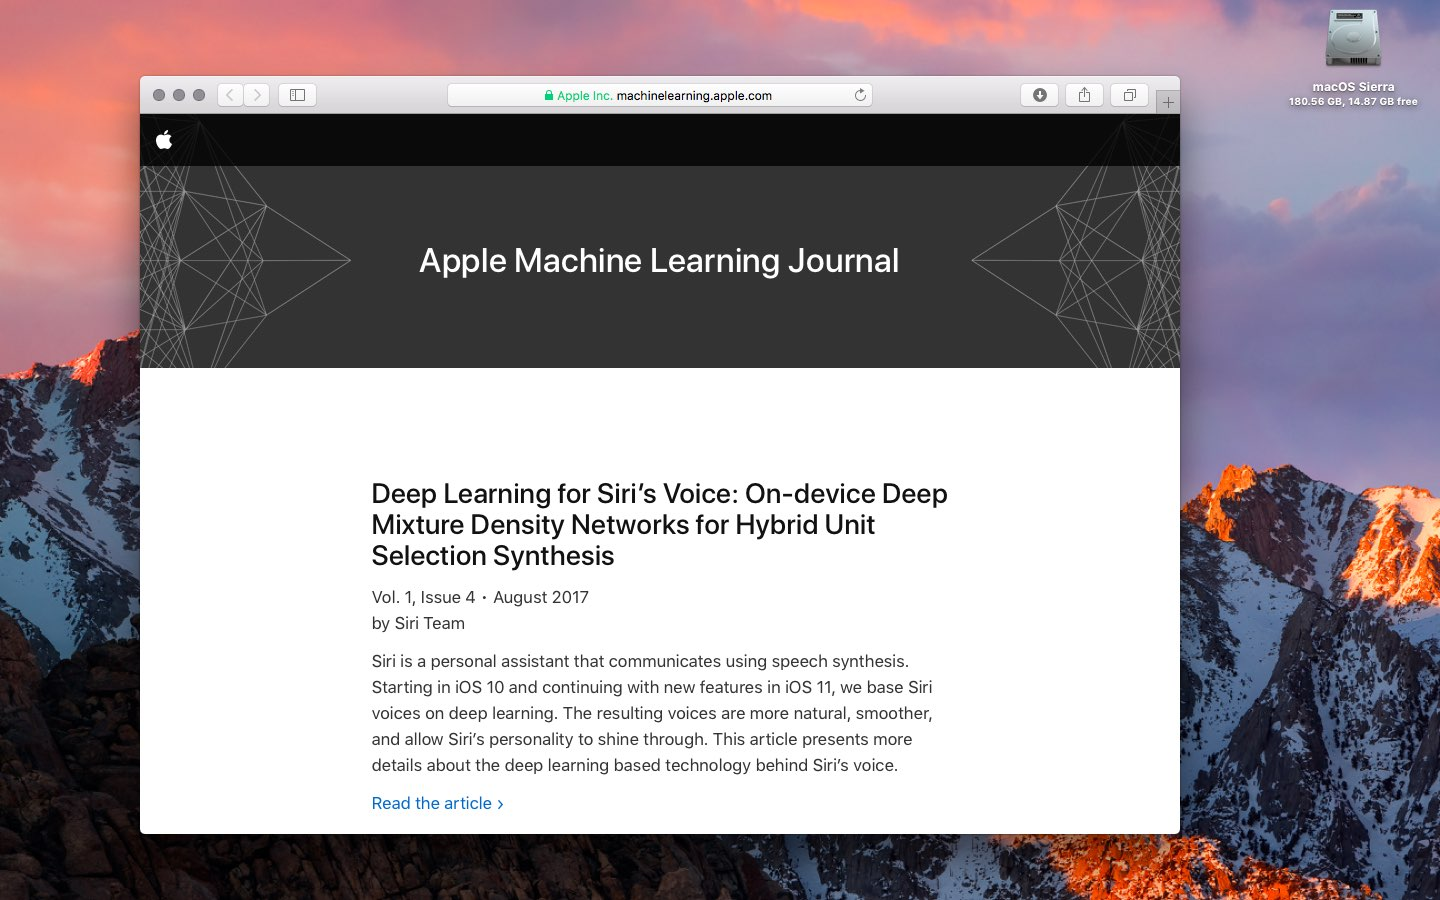 Apple Machine Learning Journal met Siri-onderzoek